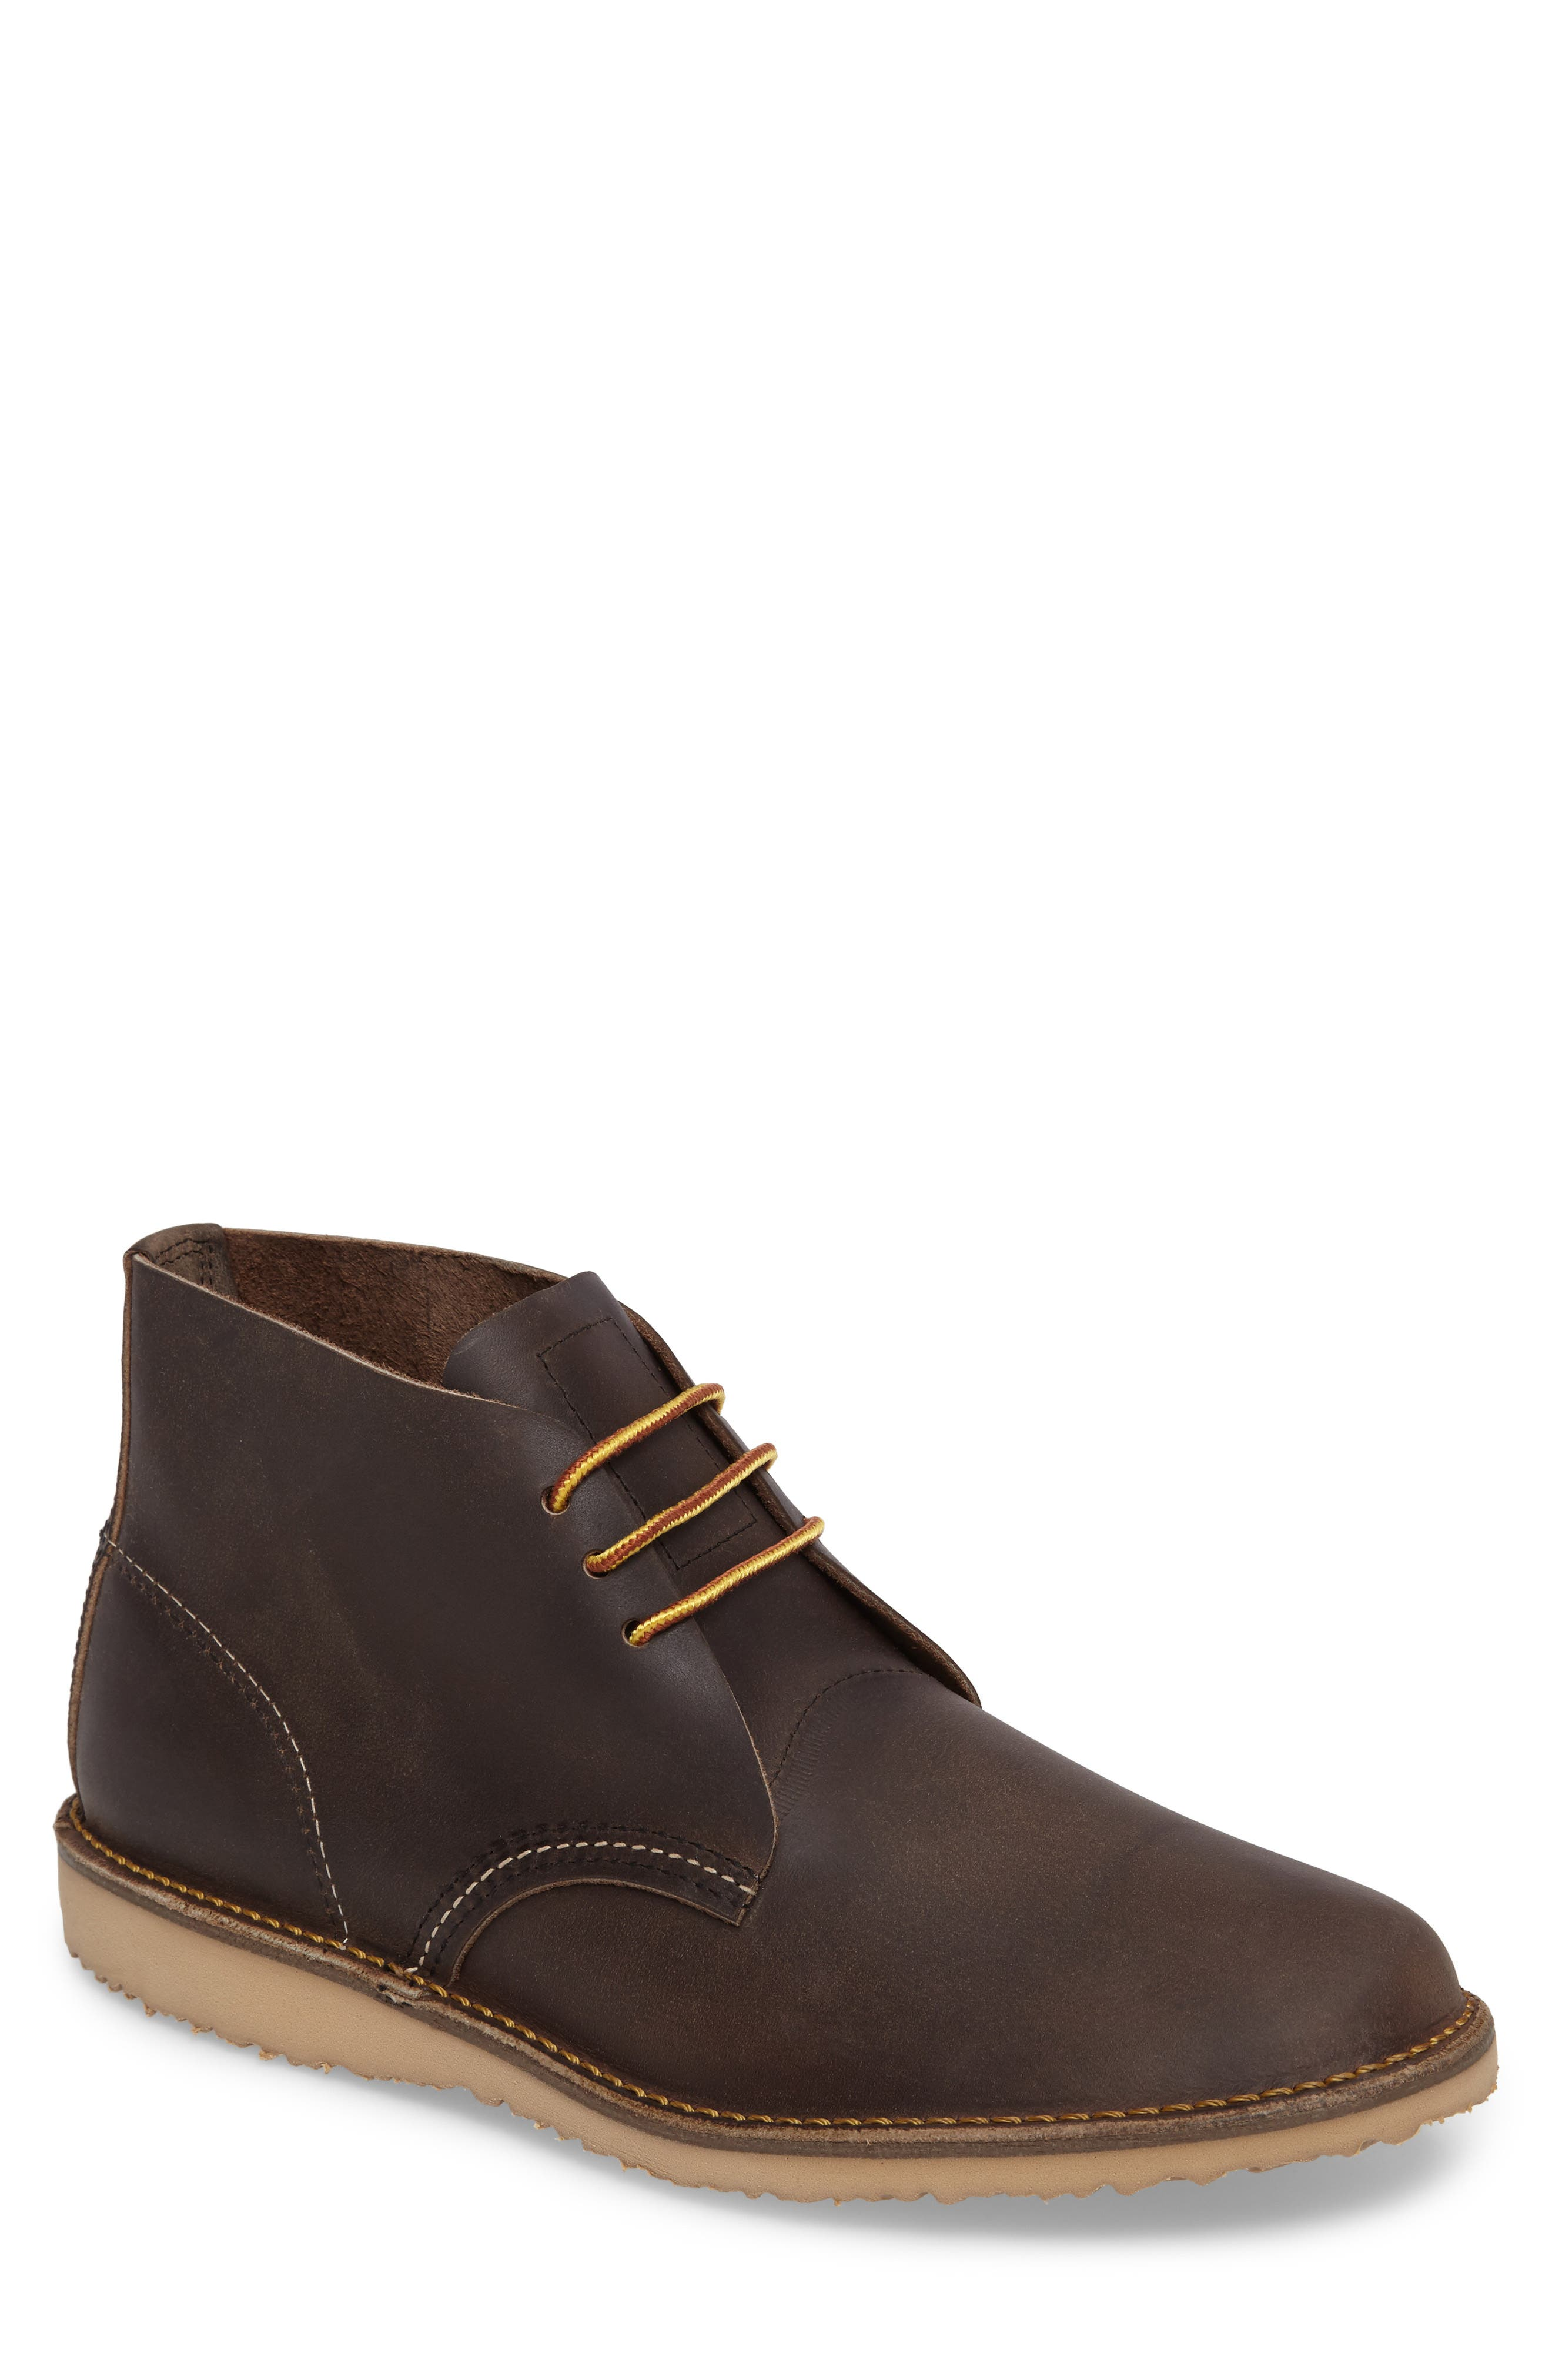 RED WING,                             Chukka Boot,                             Main thumbnail 1, color,                             200